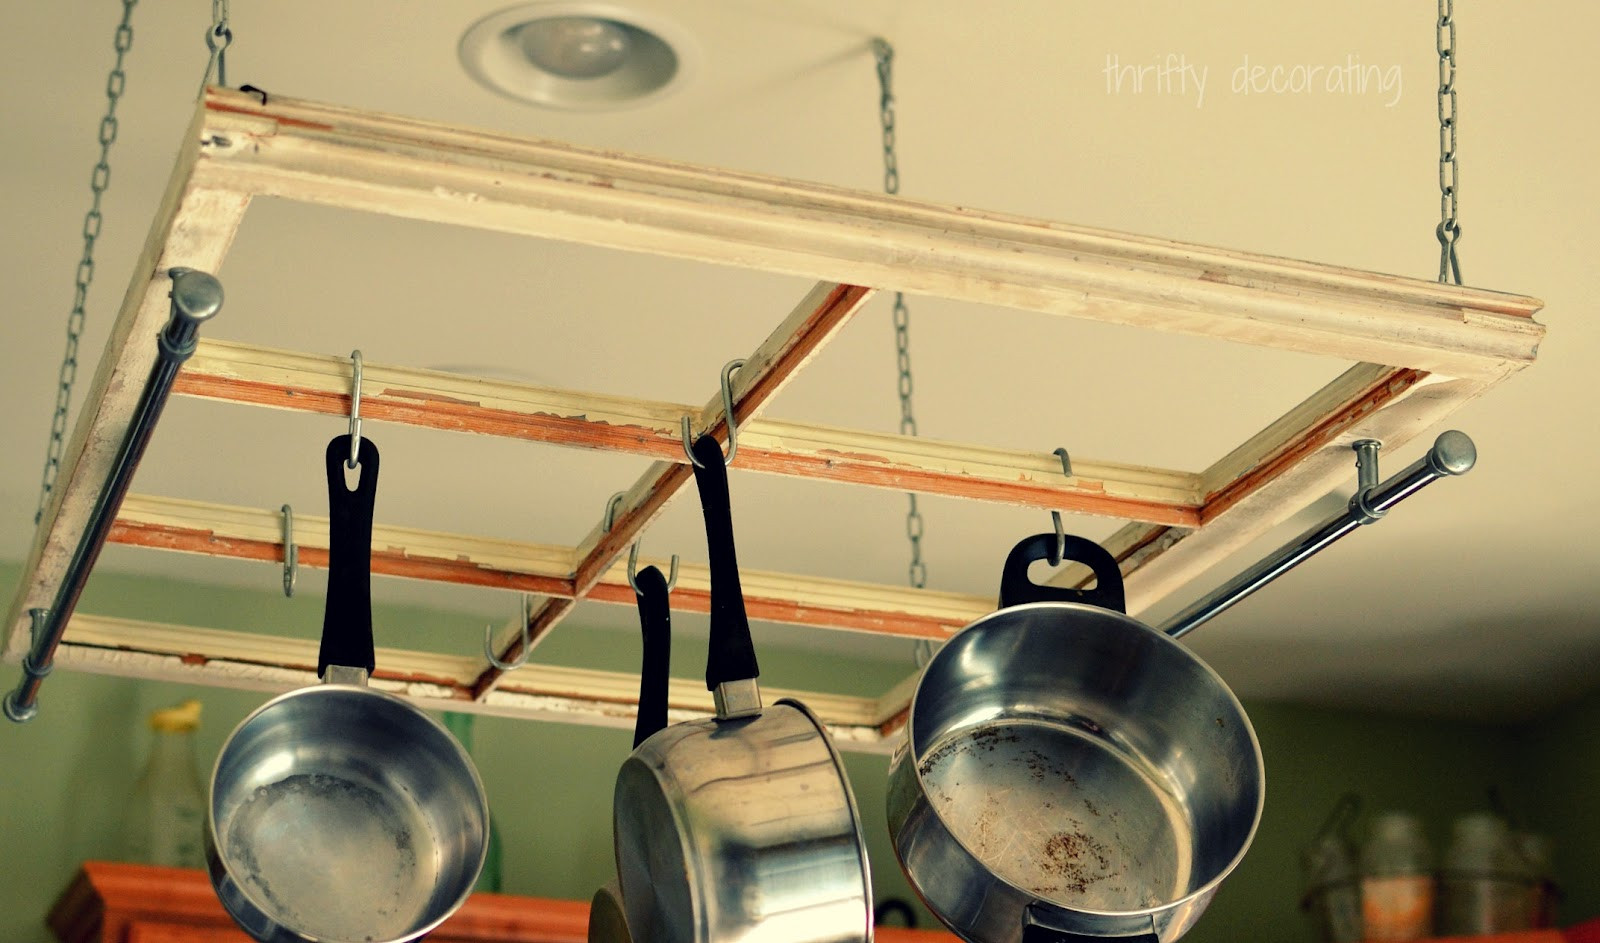 Best ideas about DIY Hanging Pot Racks . Save or Pin DIY Old Window Pot Rack The 36th AVENUE Now.